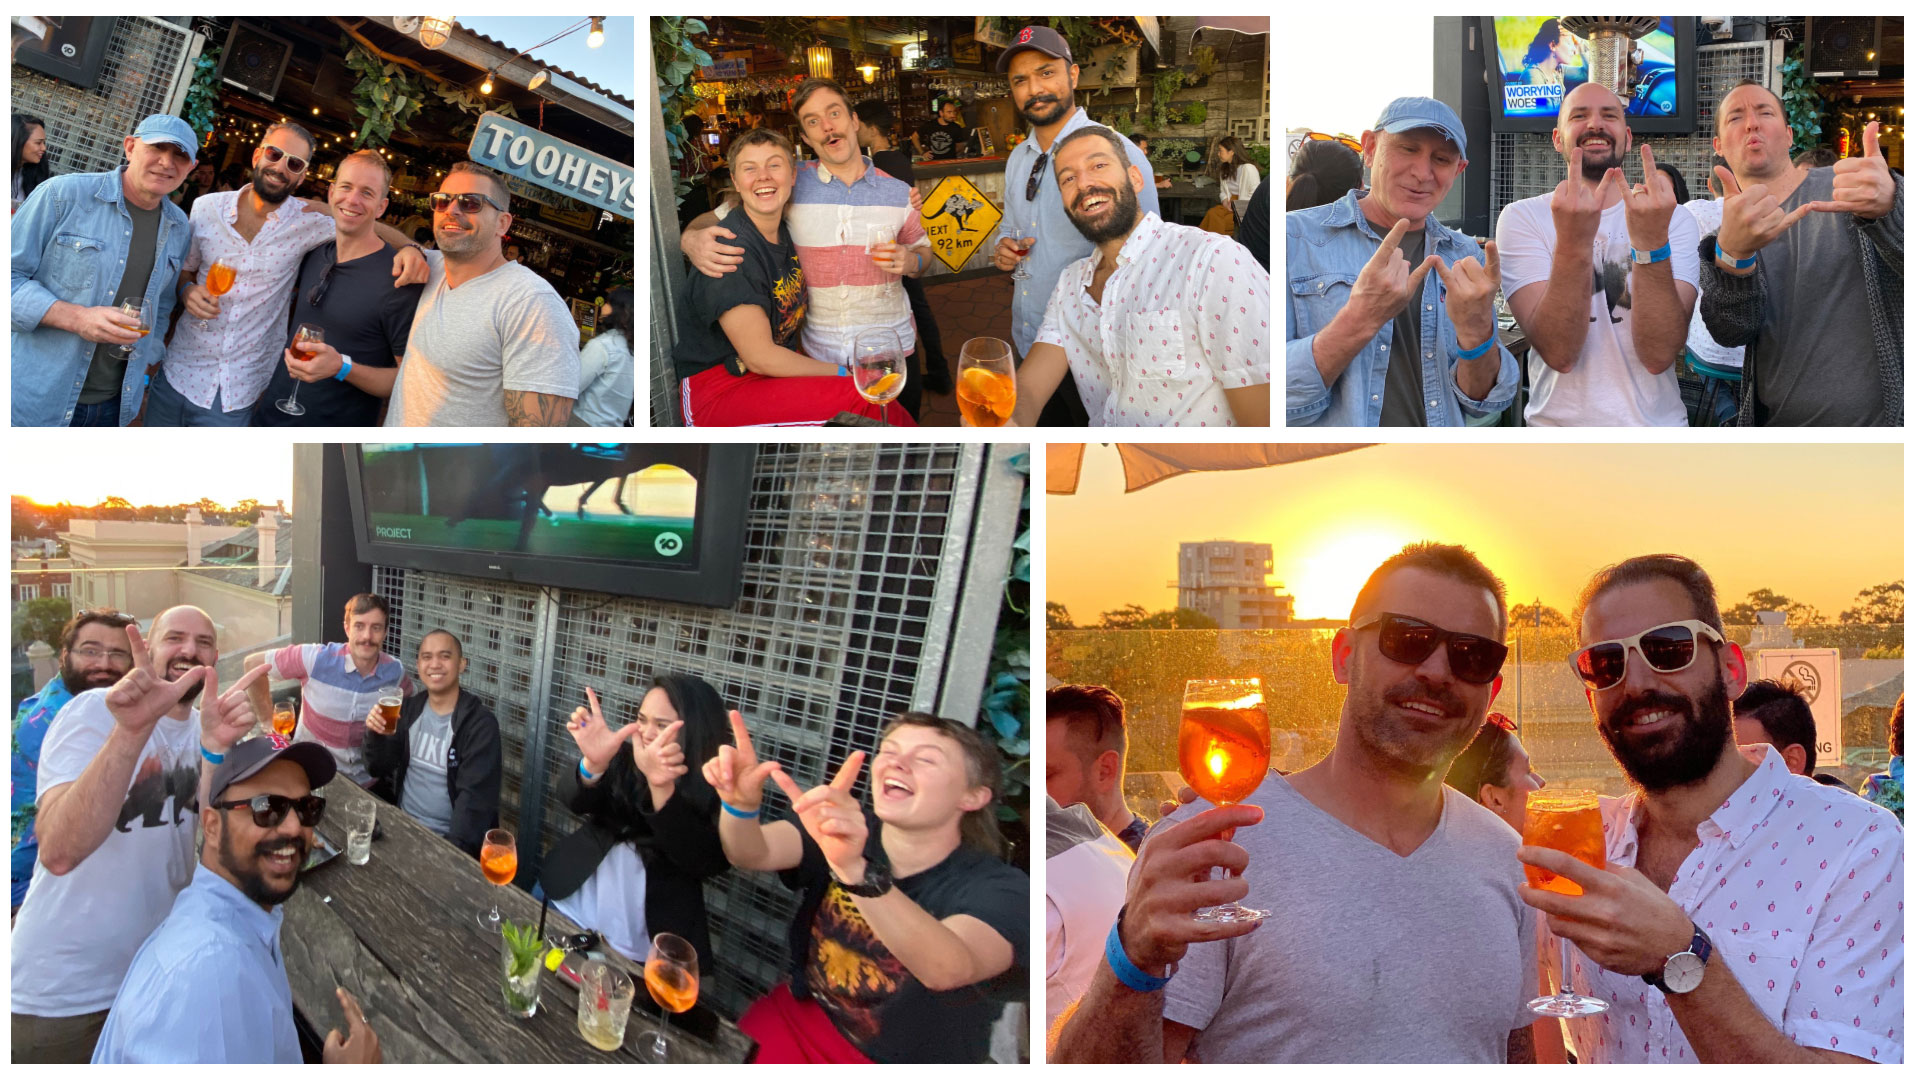 waddle-blog-friday-funday-celebration-rooftop-drinks-collage-1920x1080